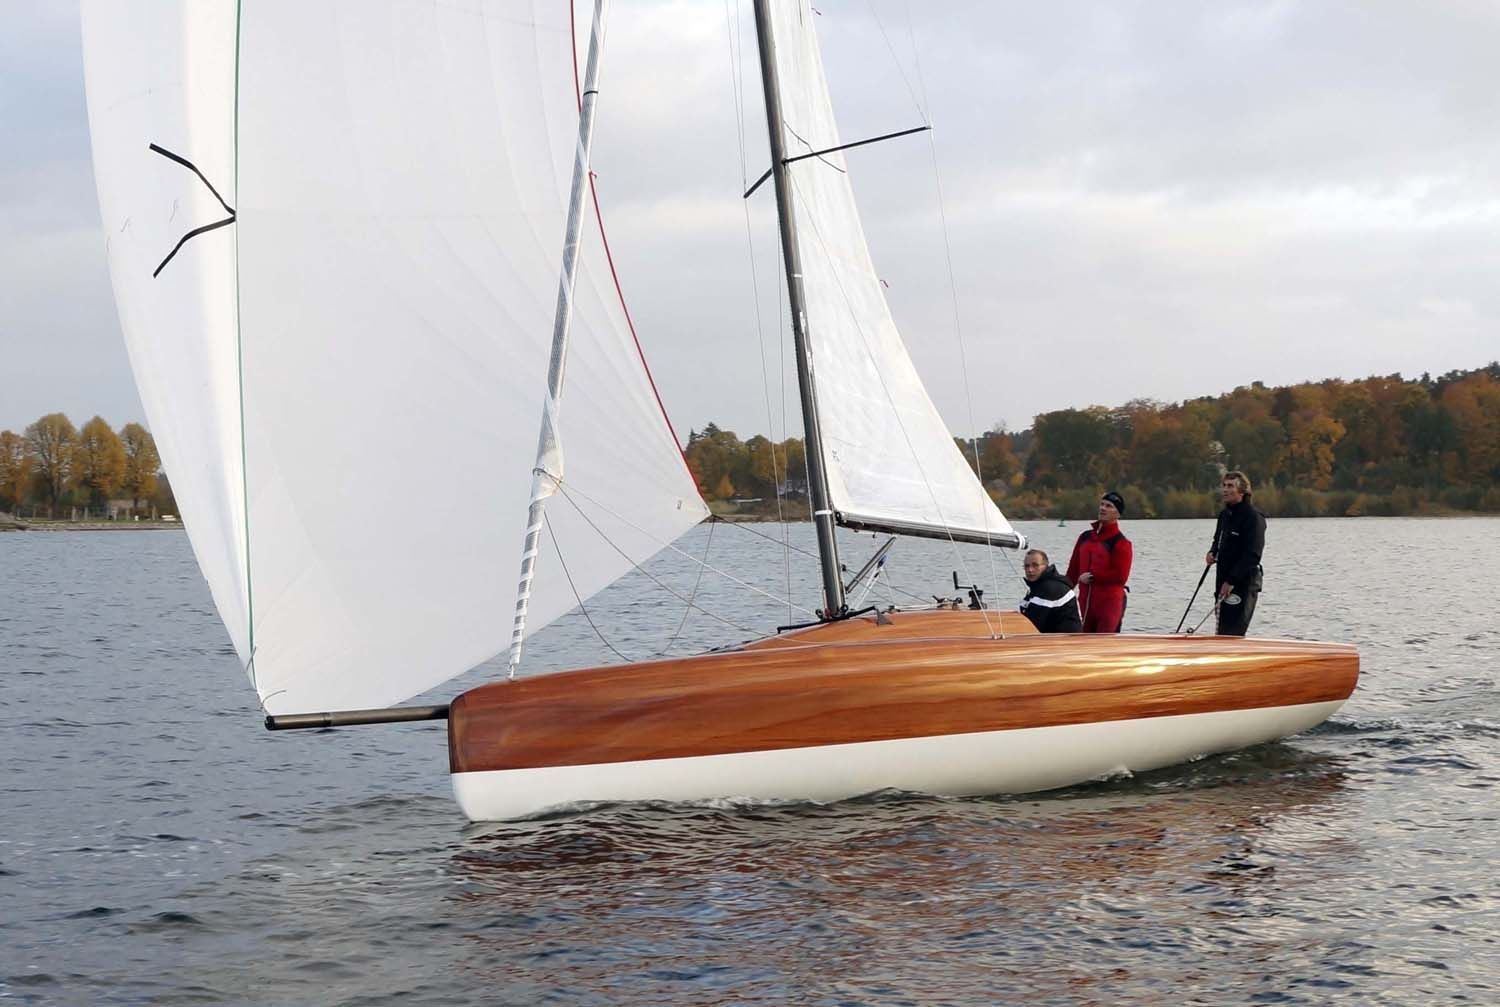 how to avoid capsizing a sailboat